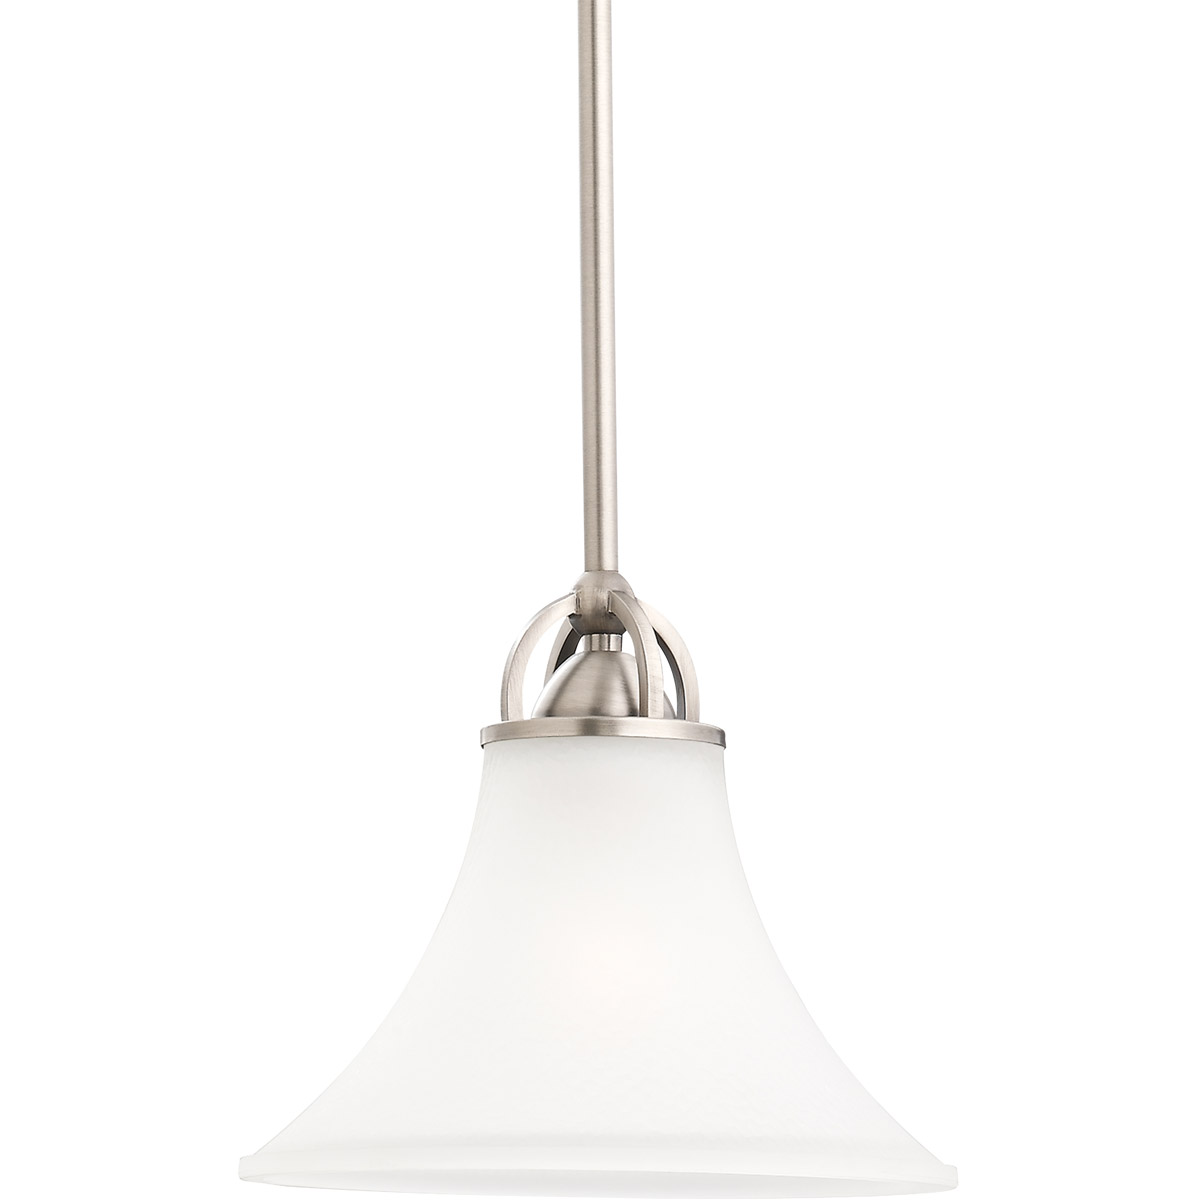 Sea Gull 61375BLE-965 Somerton 1 Light 9 inch Antique Brushed Nickel Mini Pendant Ceiling Light in Satin Etched Glass, Fluorescent photo